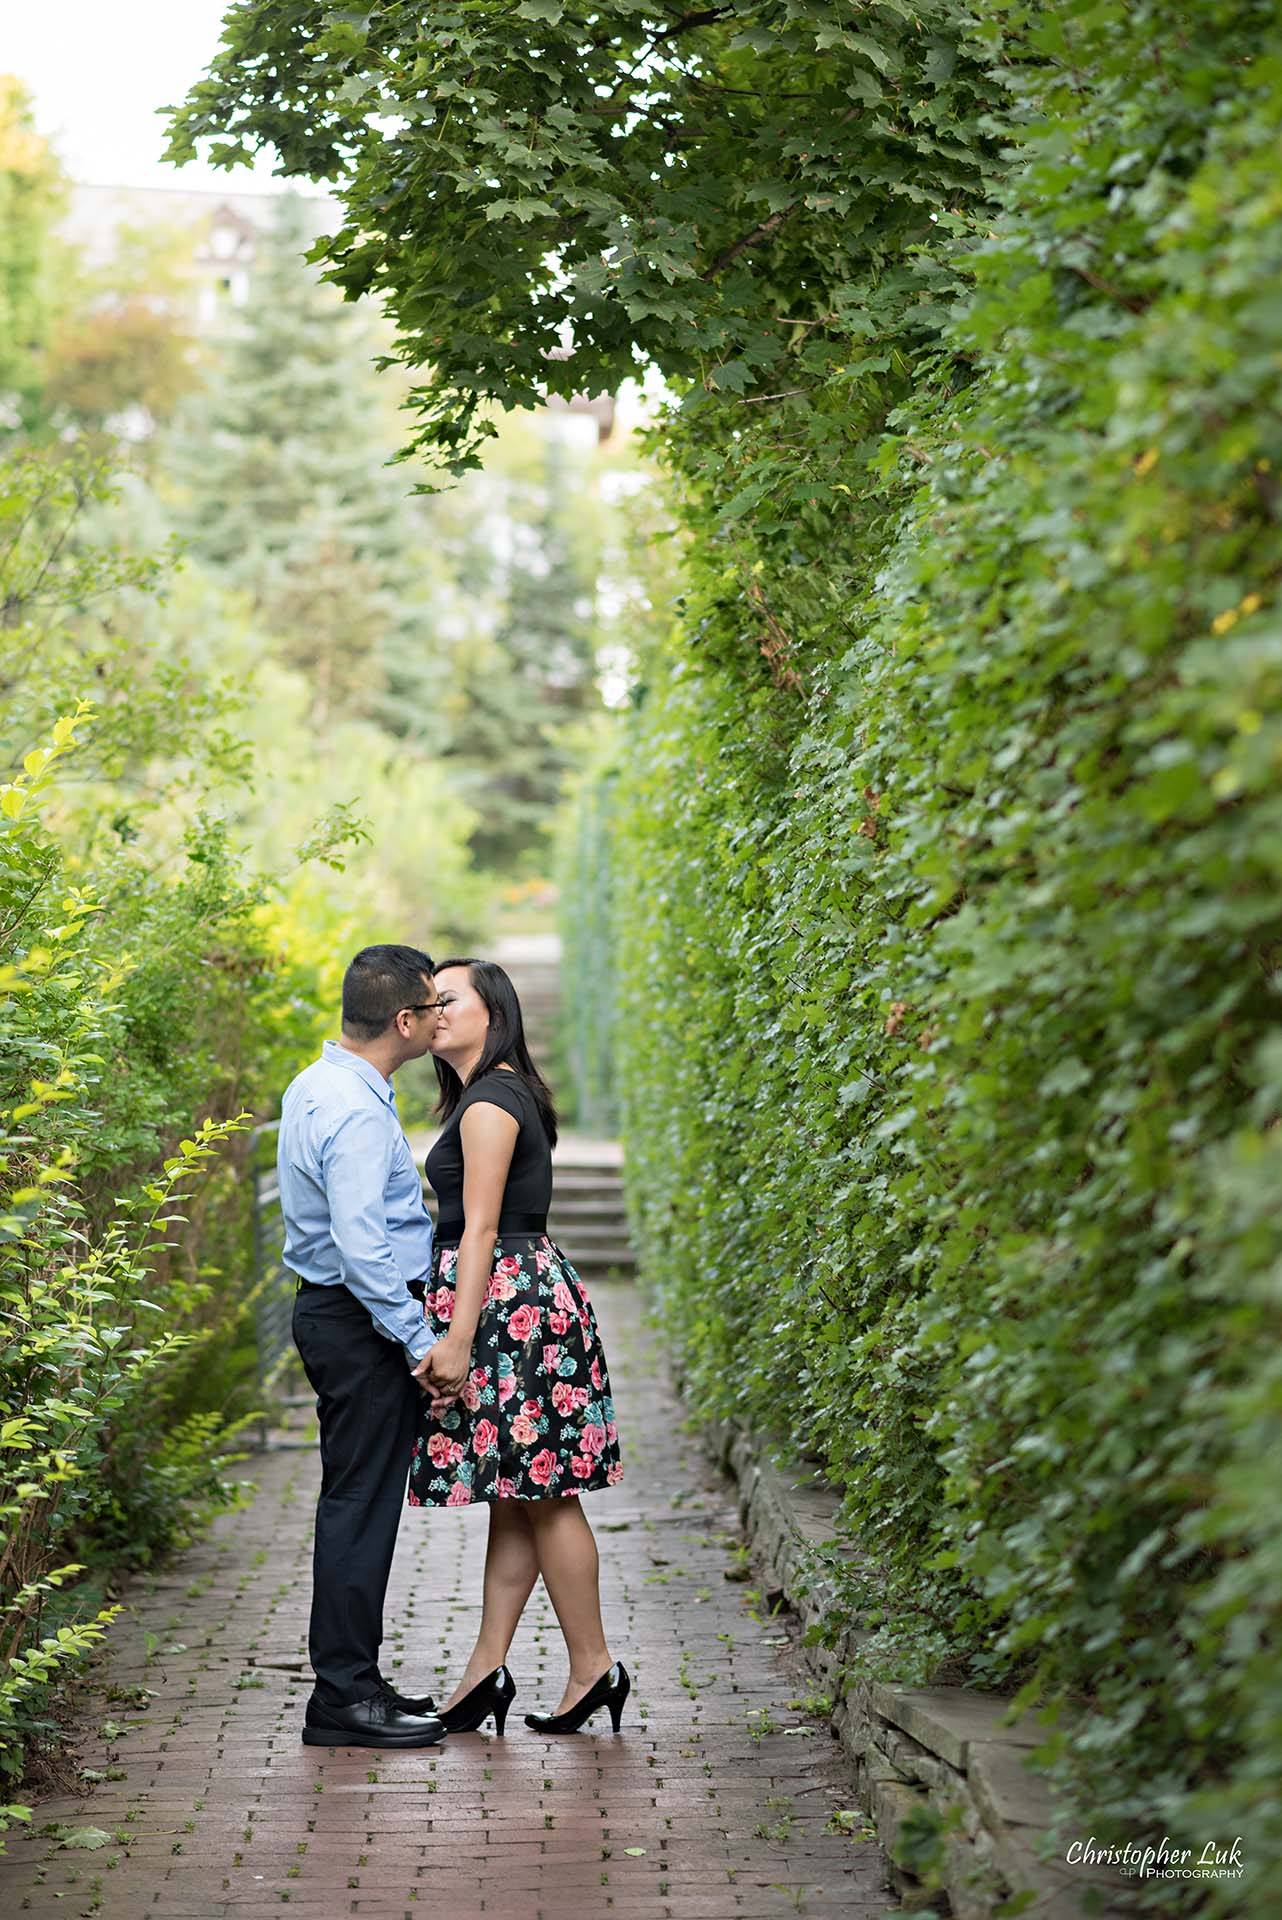 Christopher Luk Toronto Wedding Family Event Corporate Commercial Headshot Photographer Edith Jeff Engagement Session Alexander Muir Memorial Gardens Park MidTown Photo Location Natural Candid Photojournalistic - Bride and Groom Walking Forest Pathway Path Kiss